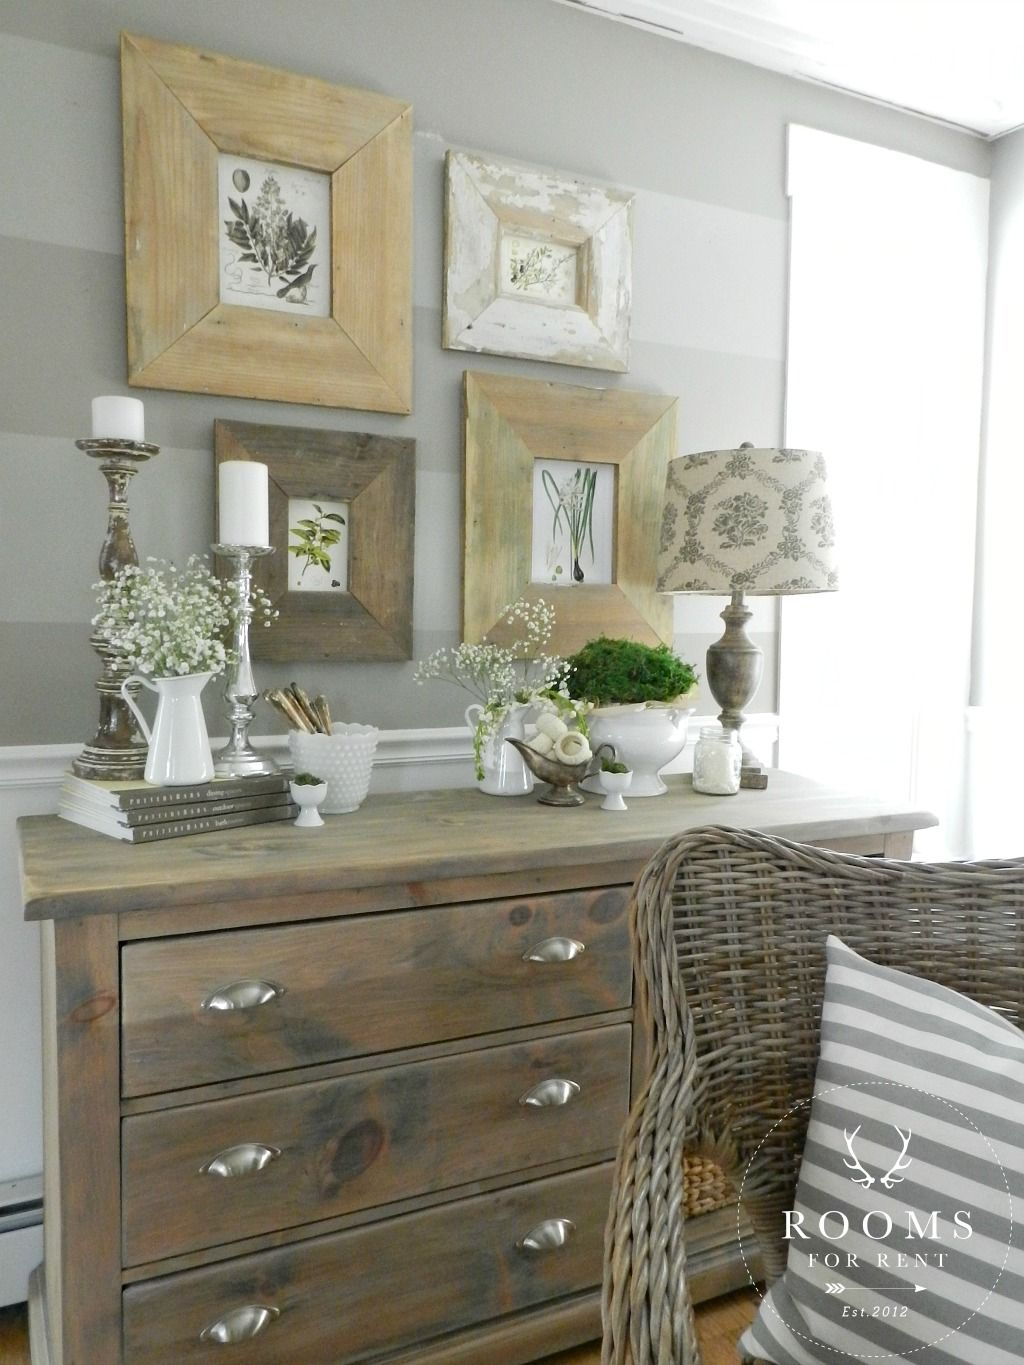 Dresser Designs For Bedroom Gorgeous It Was So Much Fun Teaming Up With Some Of My Favorite Gal Pals On Design Decoration